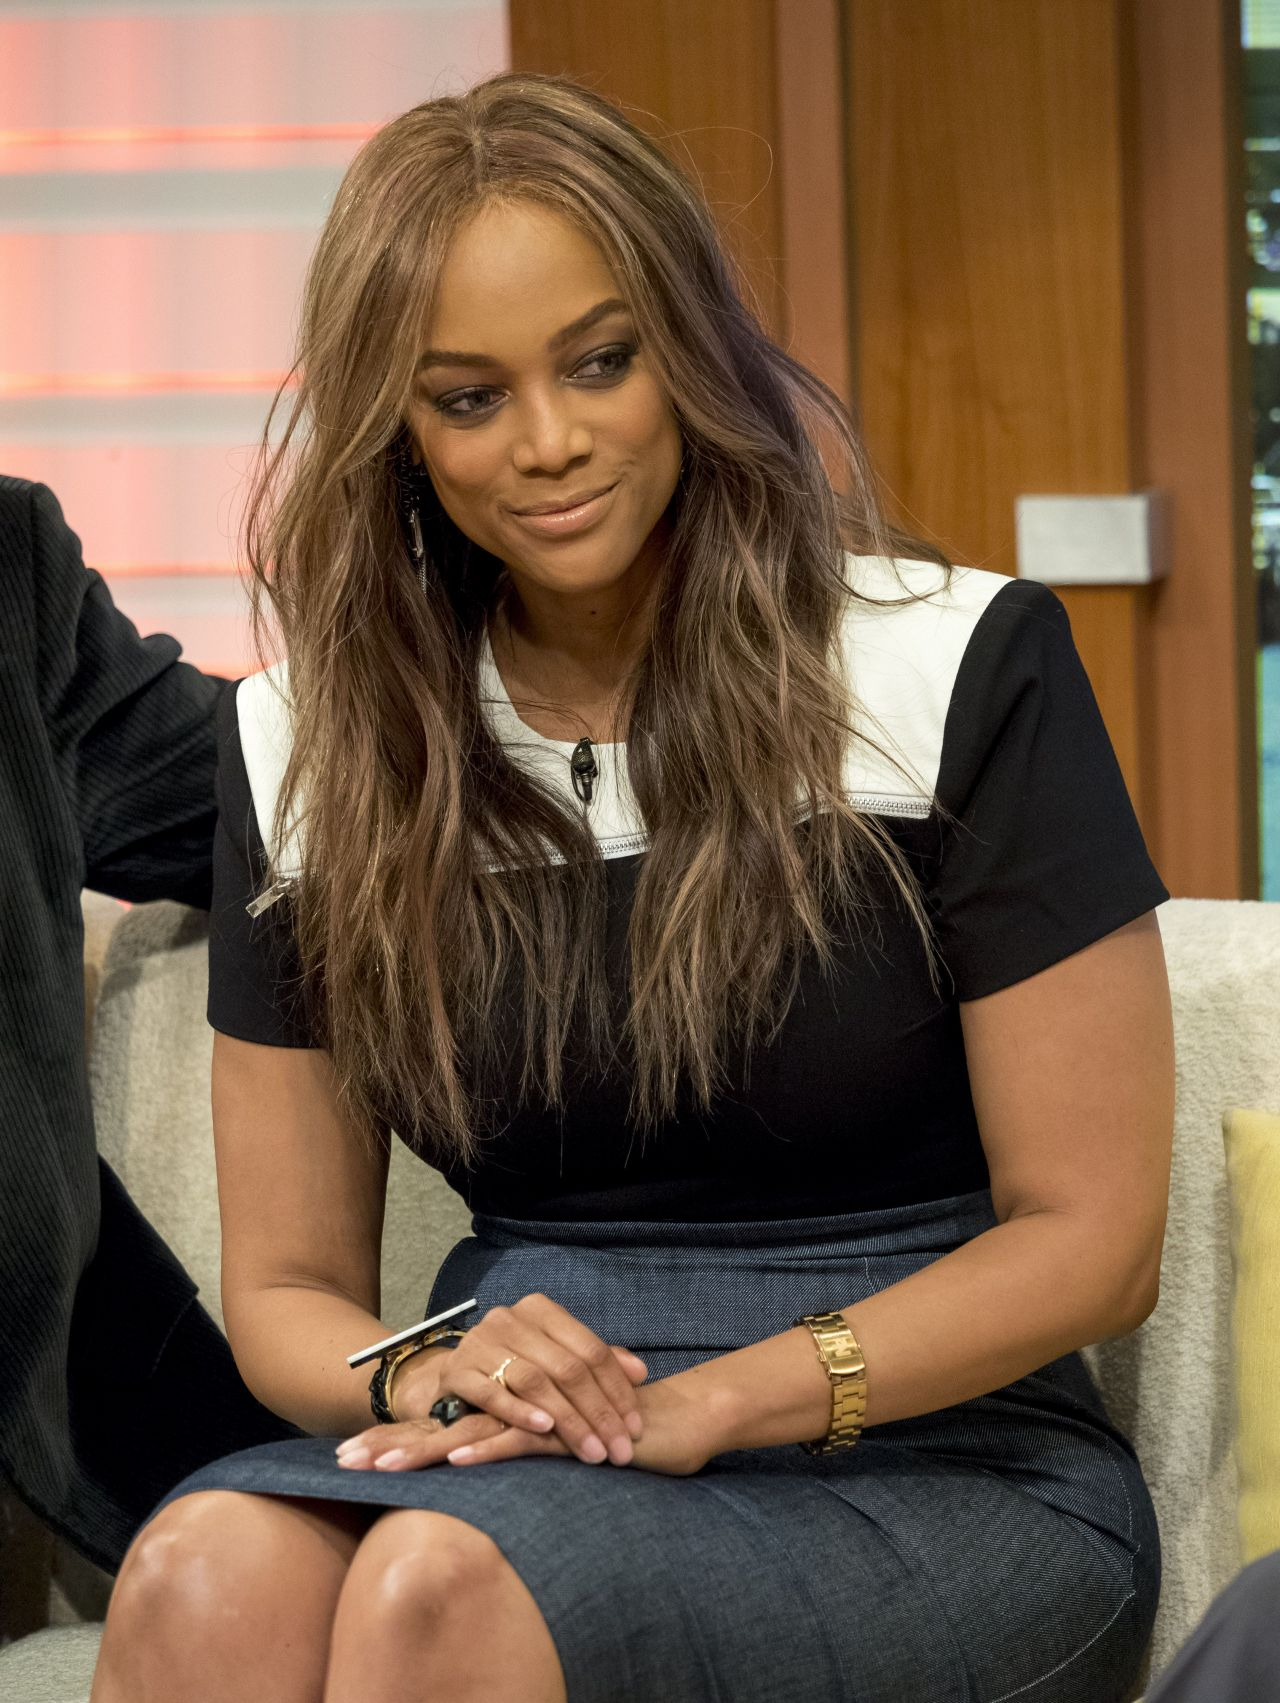 Tyra Banks is a good role model